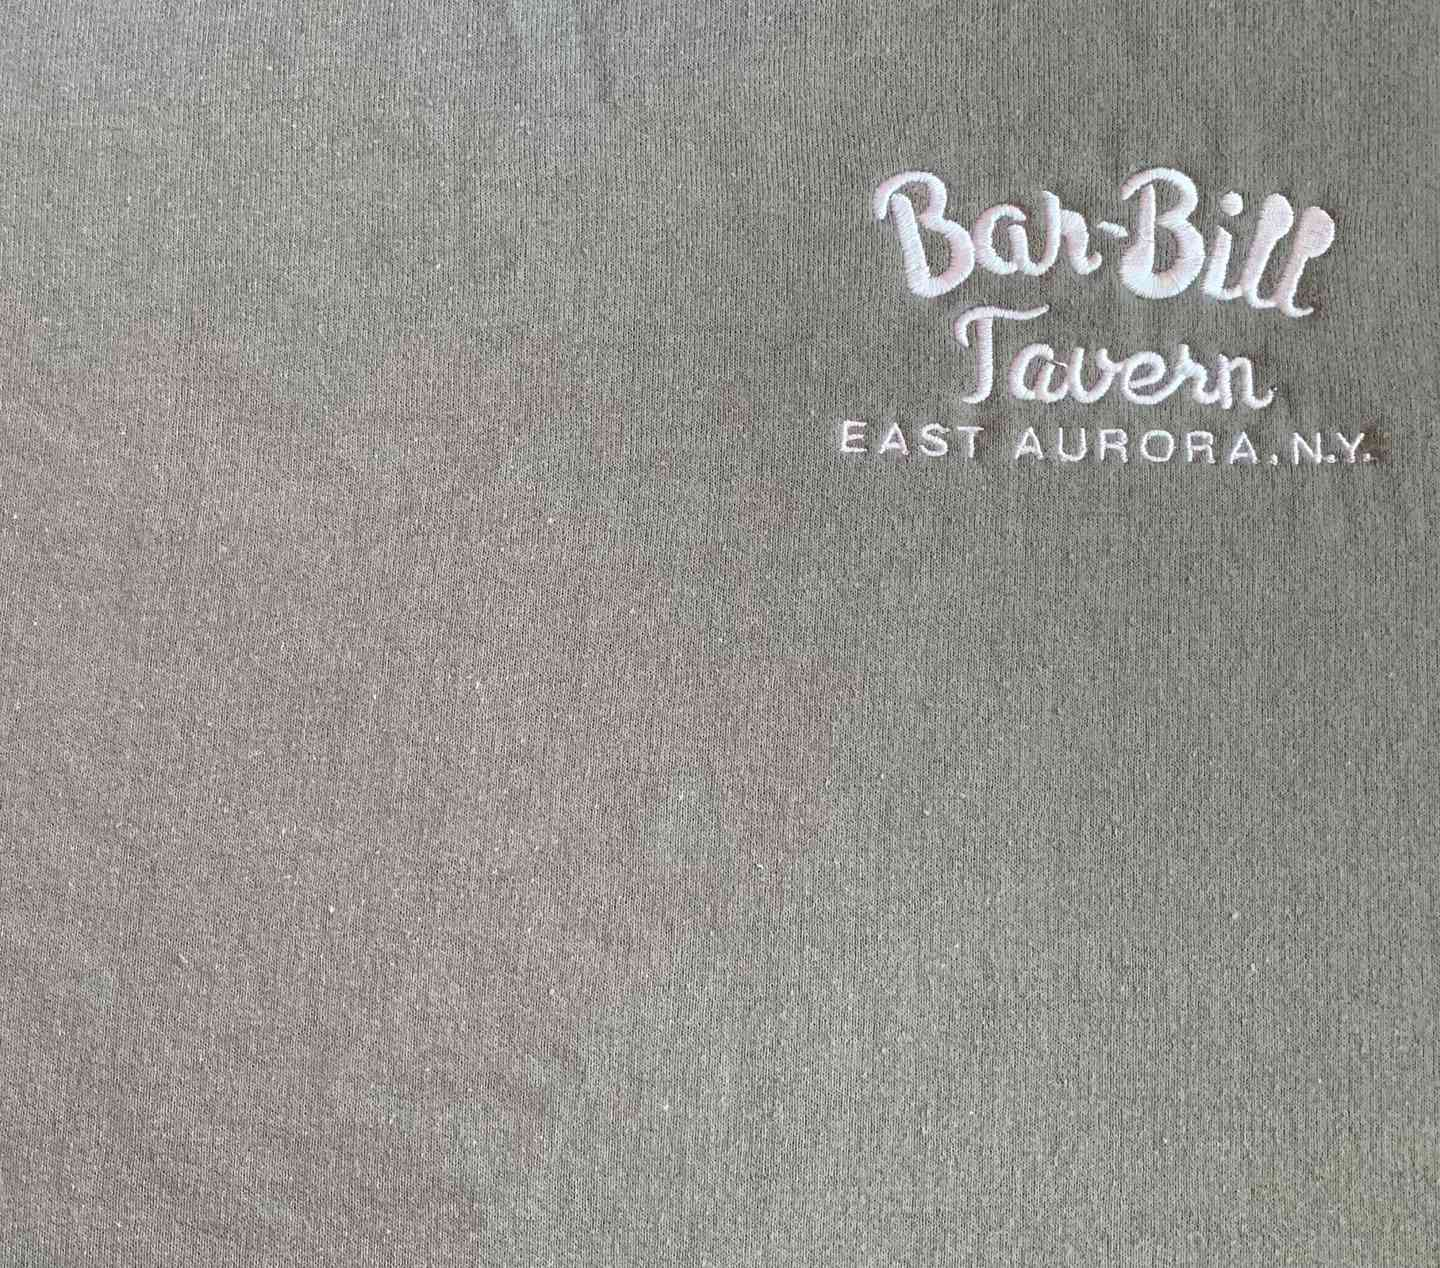 BAR-BILL GRAY CREWNECK SWEATSHIRT